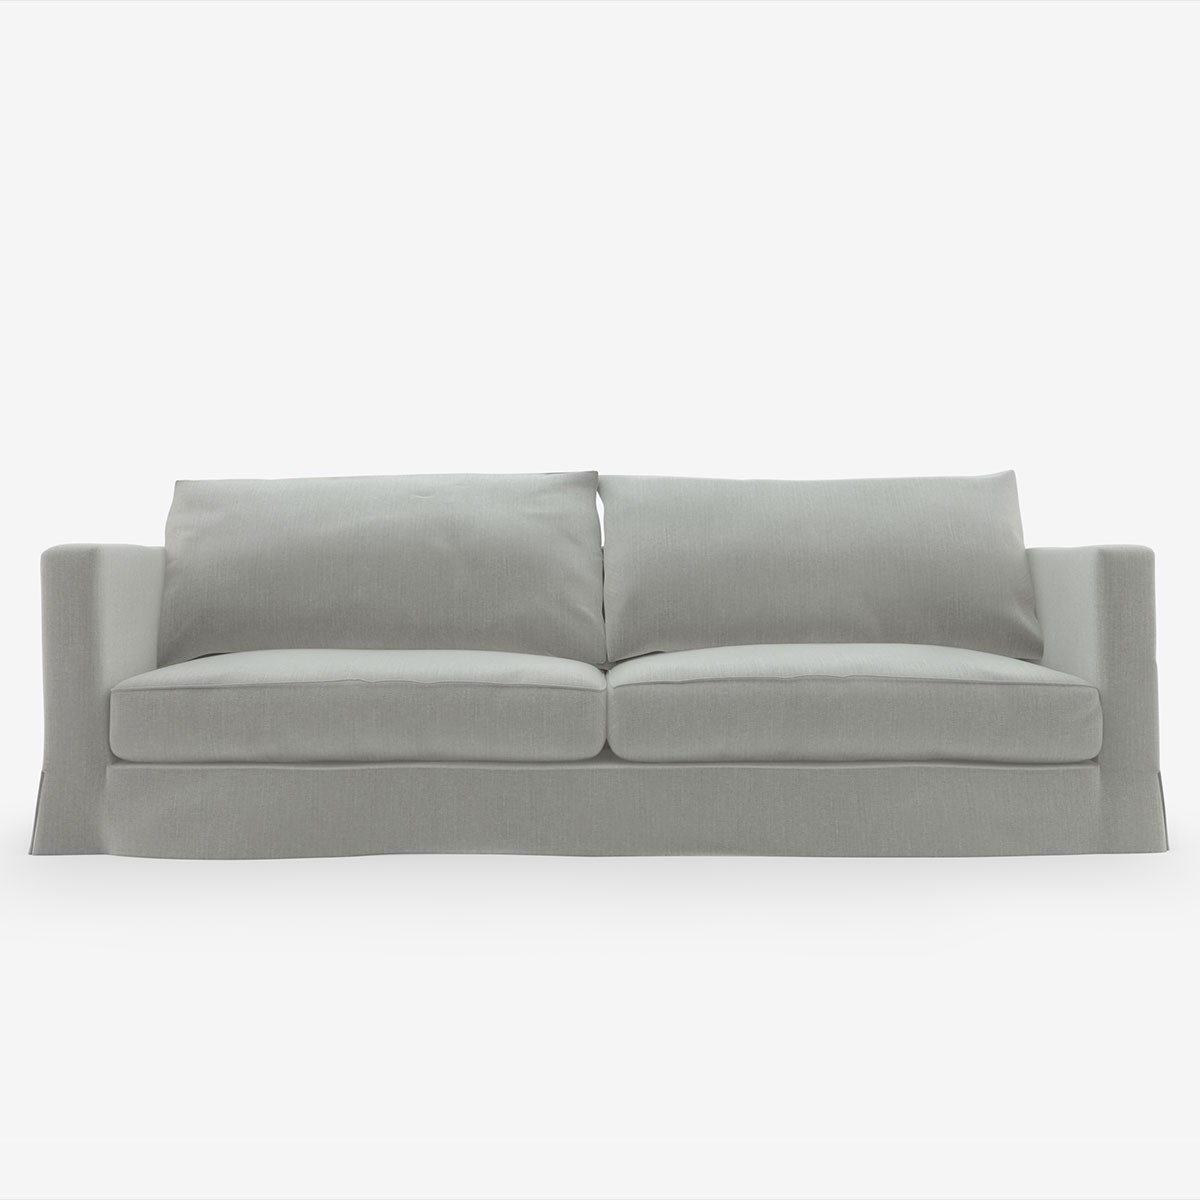 Image shows Large Cool Comfortable Sofa - 3 Seater in Studio Linen Silver Grey